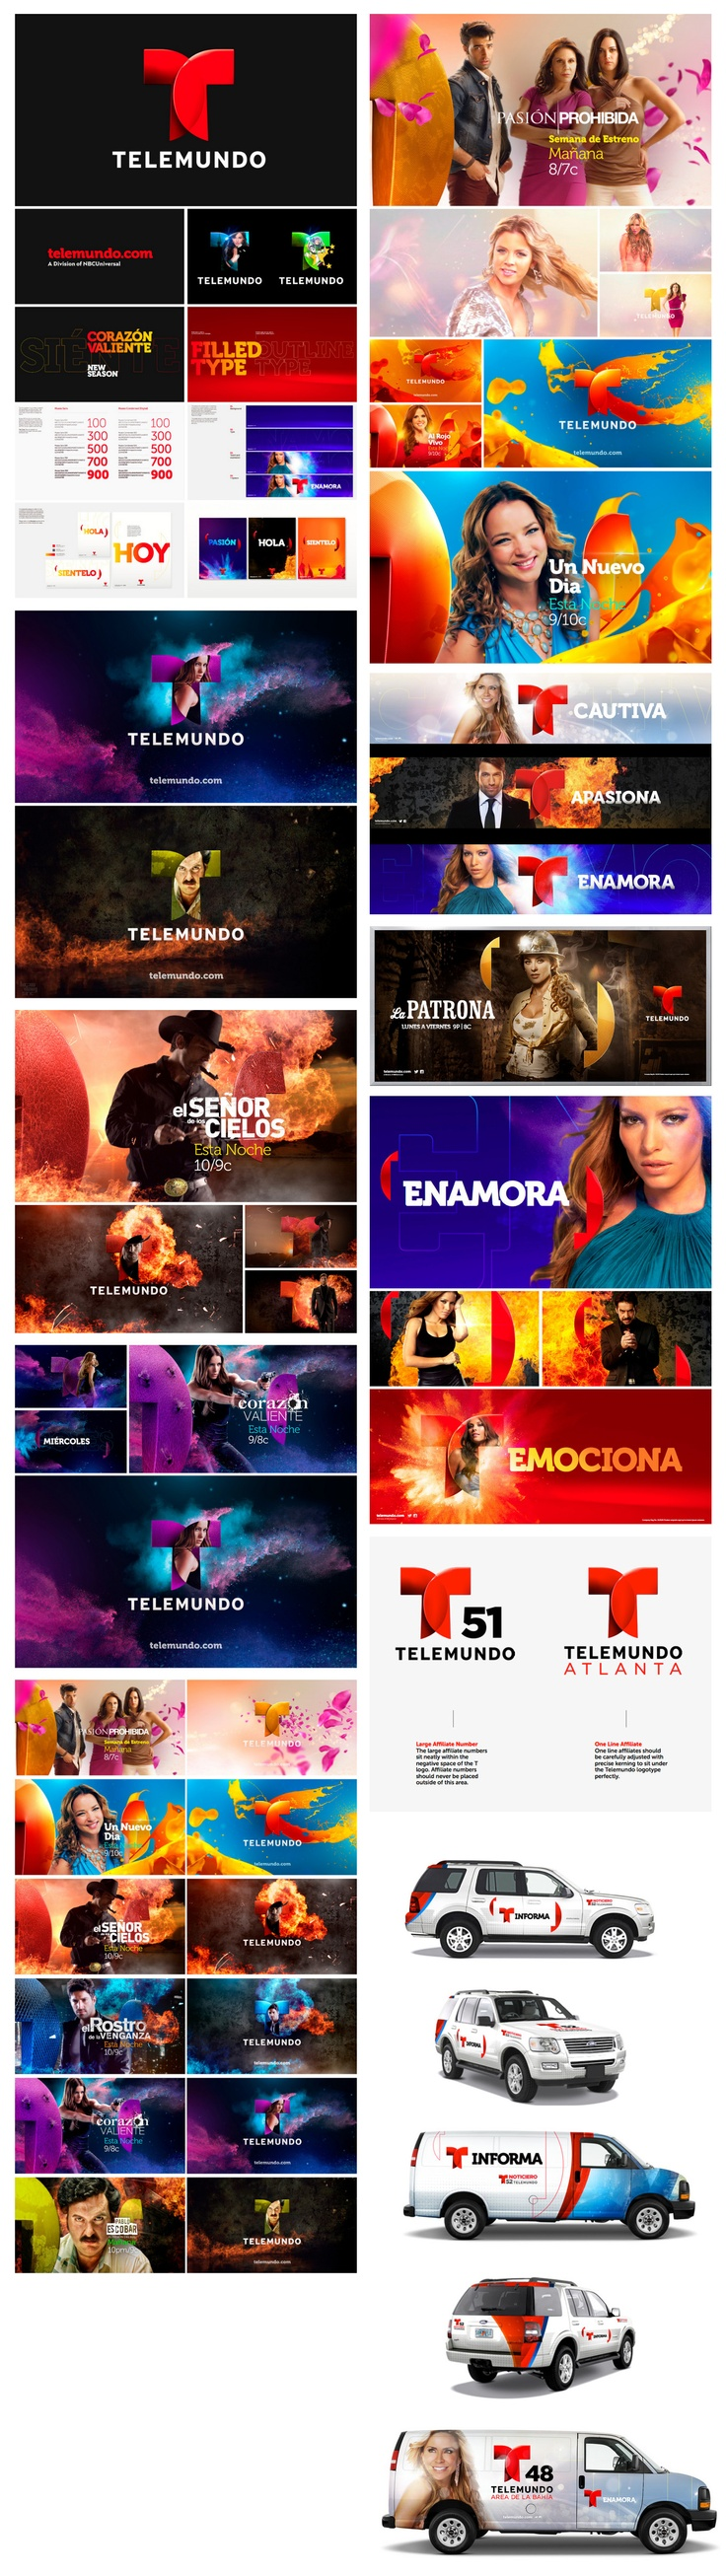 http://brandingsource.blogspot.co.il/2013/02/new-look-telemundo.html